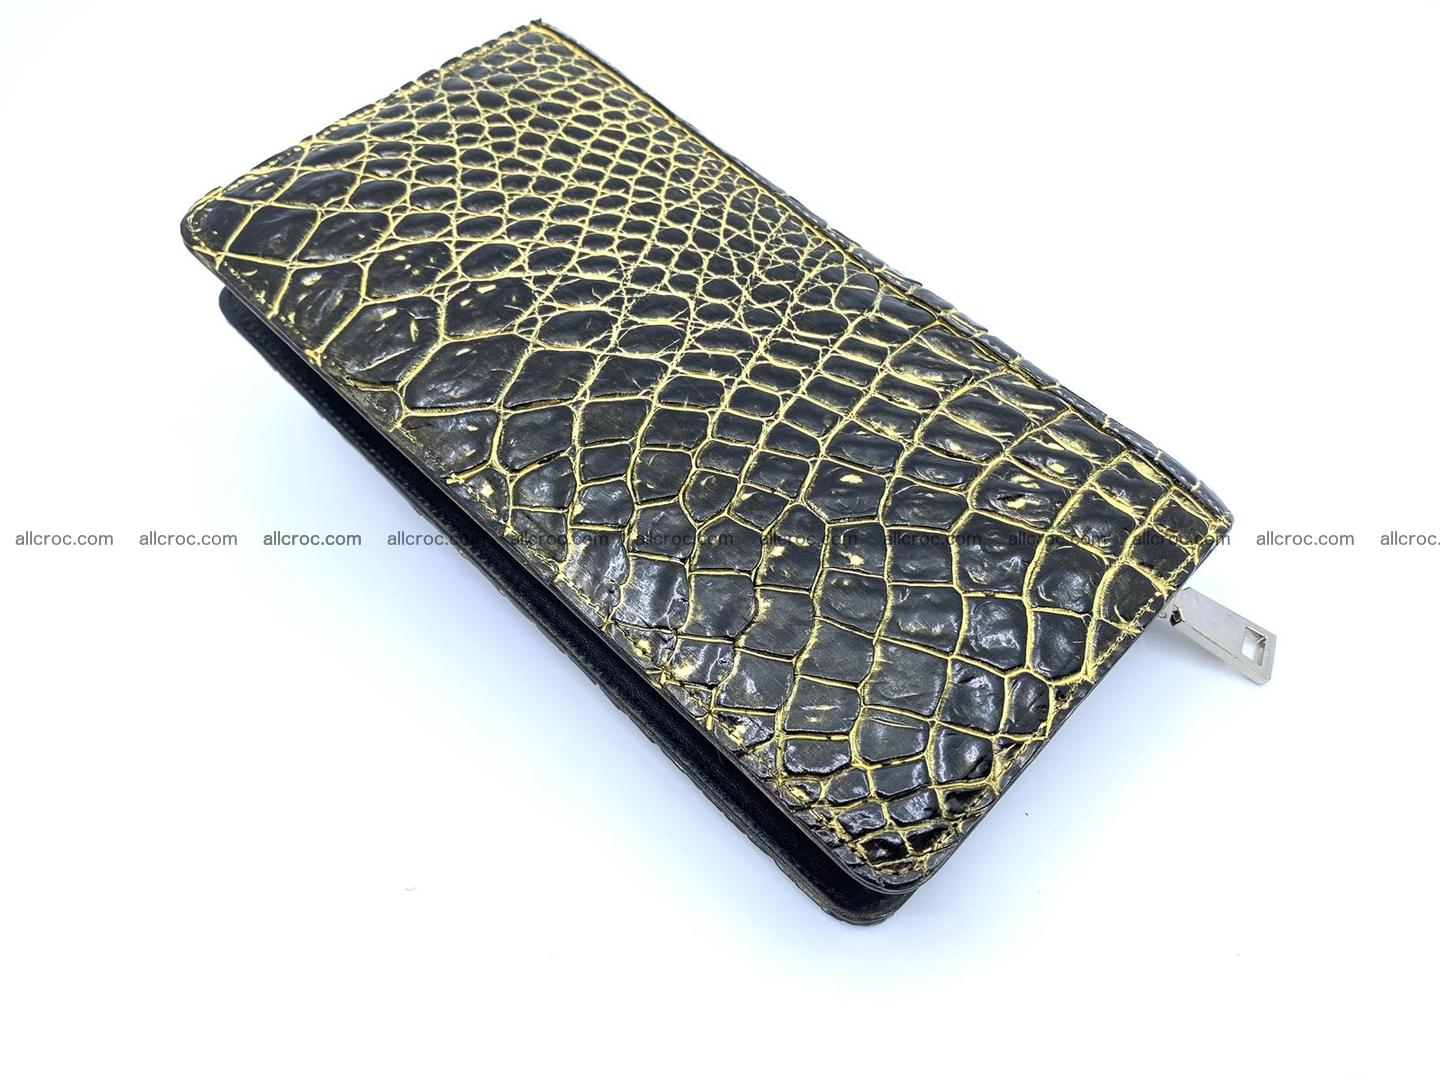 Crocodile skin zip wallet 1301 Foto 10